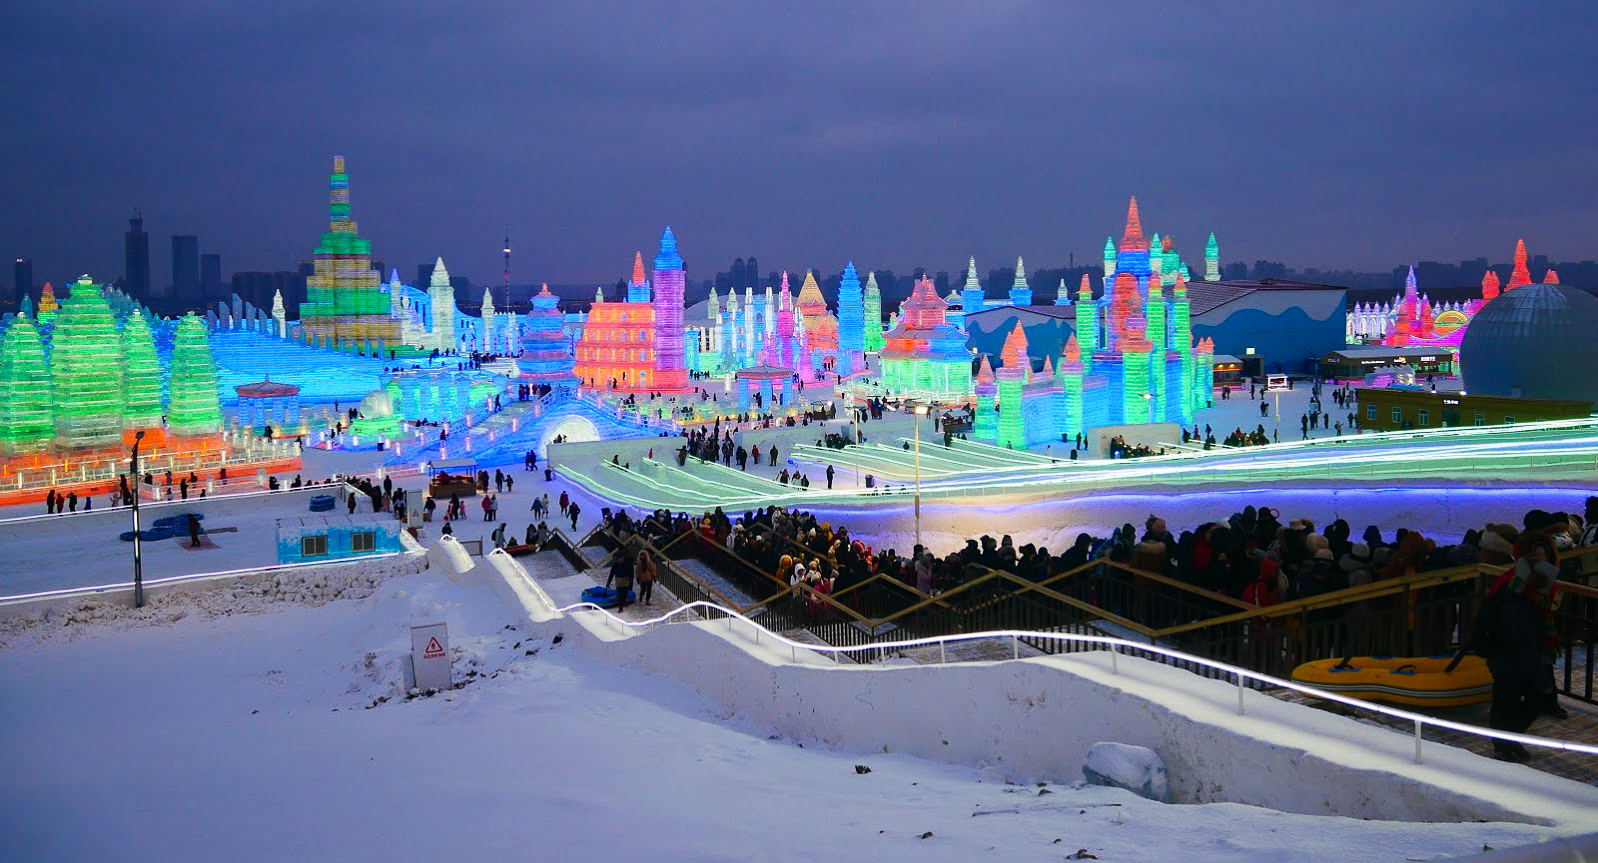 ice buildings and slide at night at Harbin Ice and Snow World